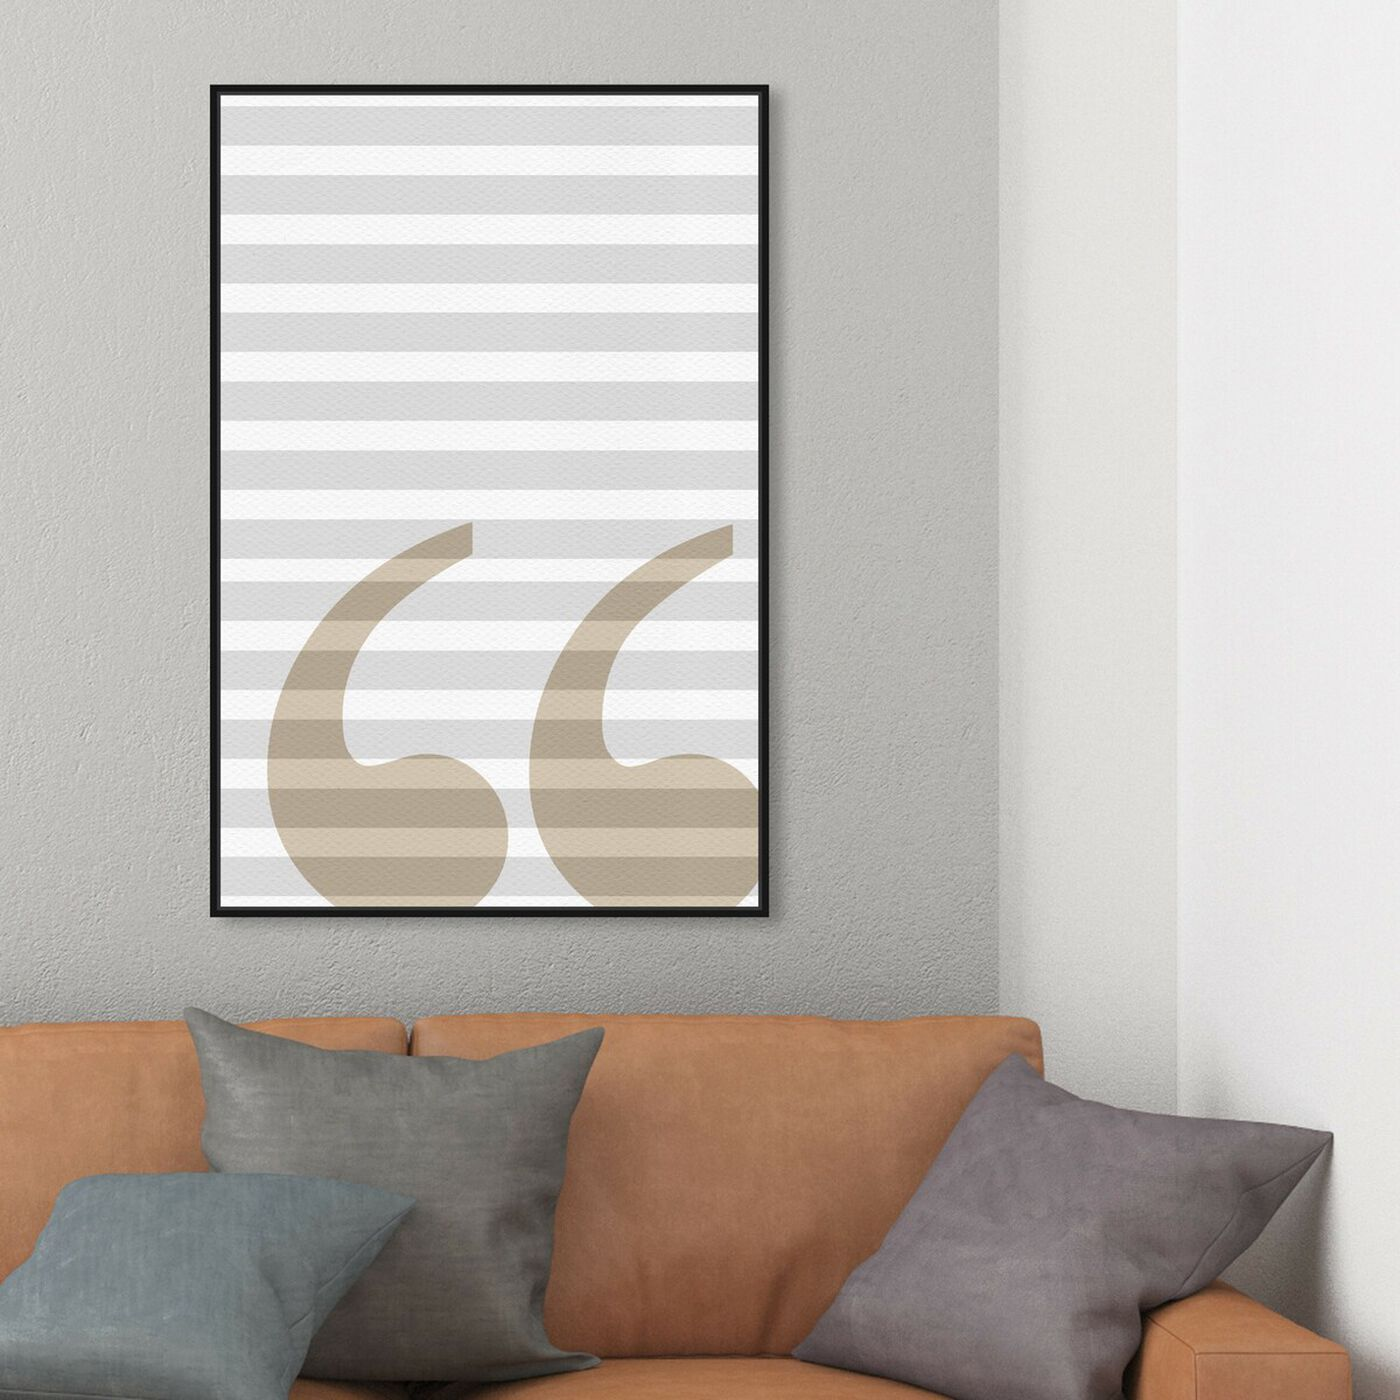 Hanging view of Grammar 101 featuring typography and quotes and letters and calligraphy art.